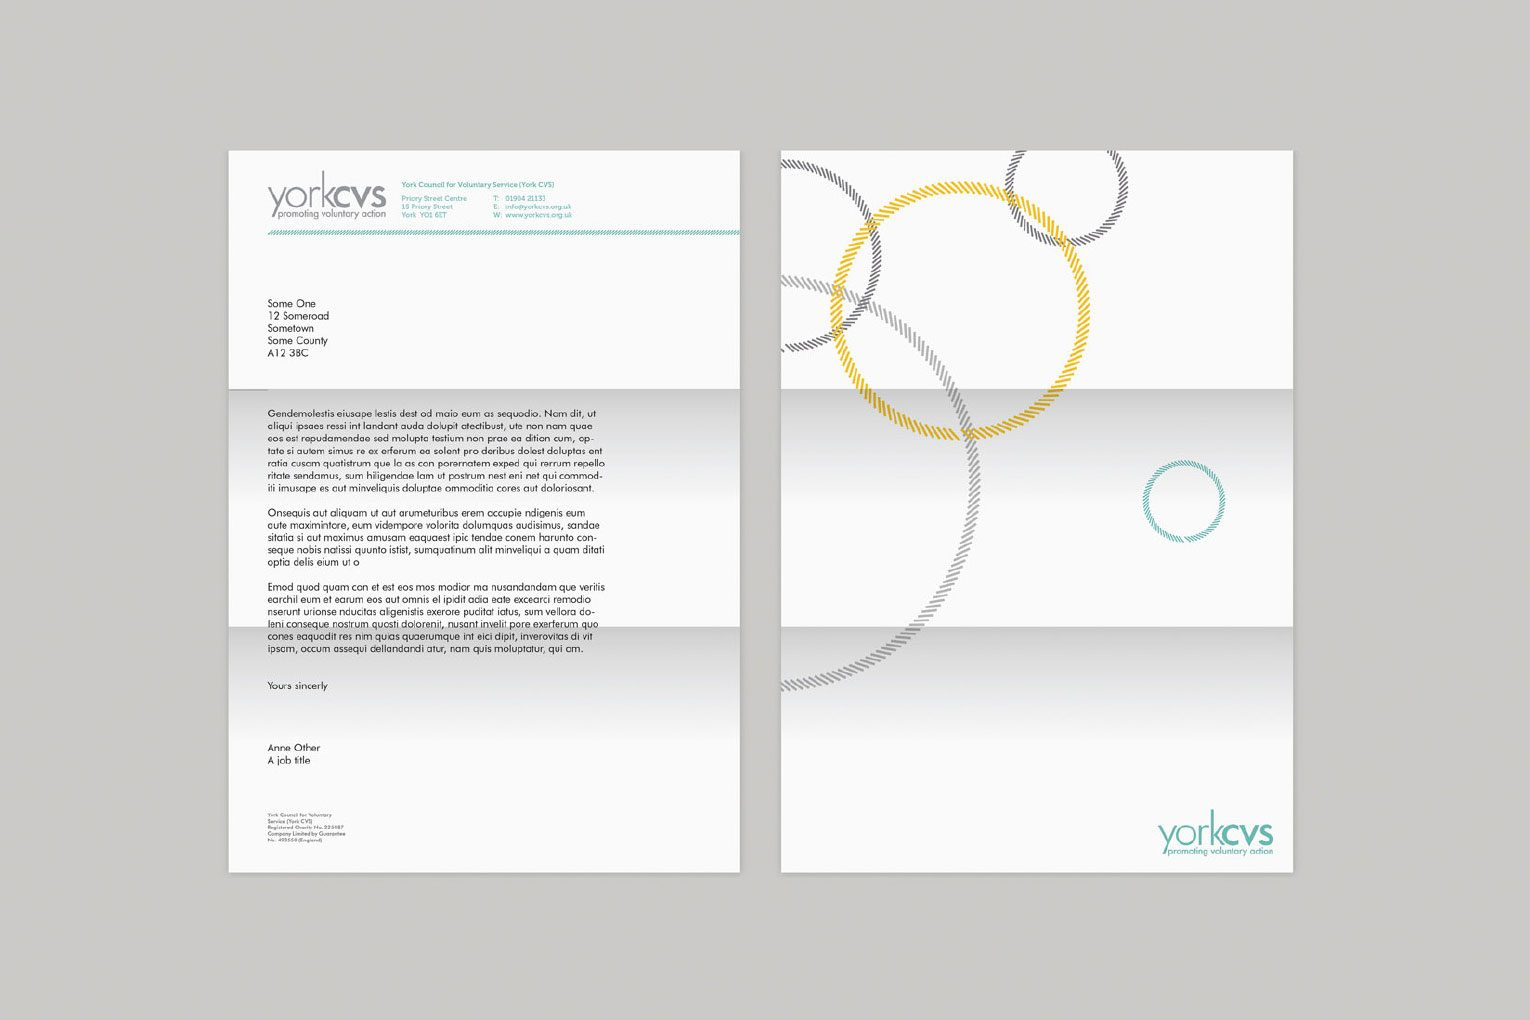 Changing brand perceptions letterheads.